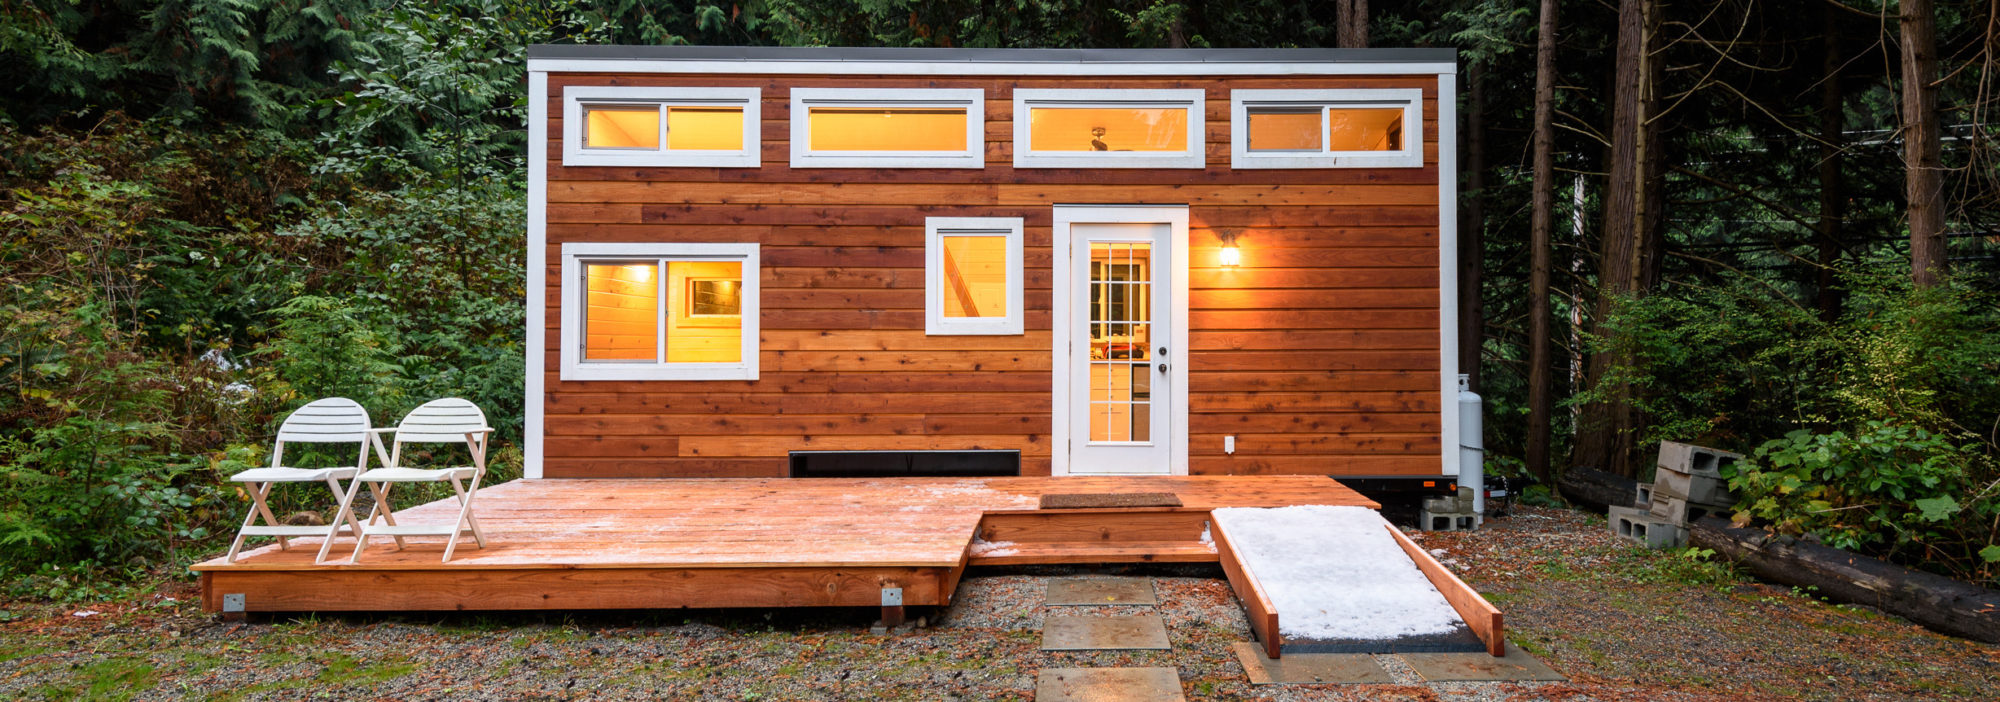 New accessory dwelling laws mean you can finally build that investment property in your own backyard. Here's how.